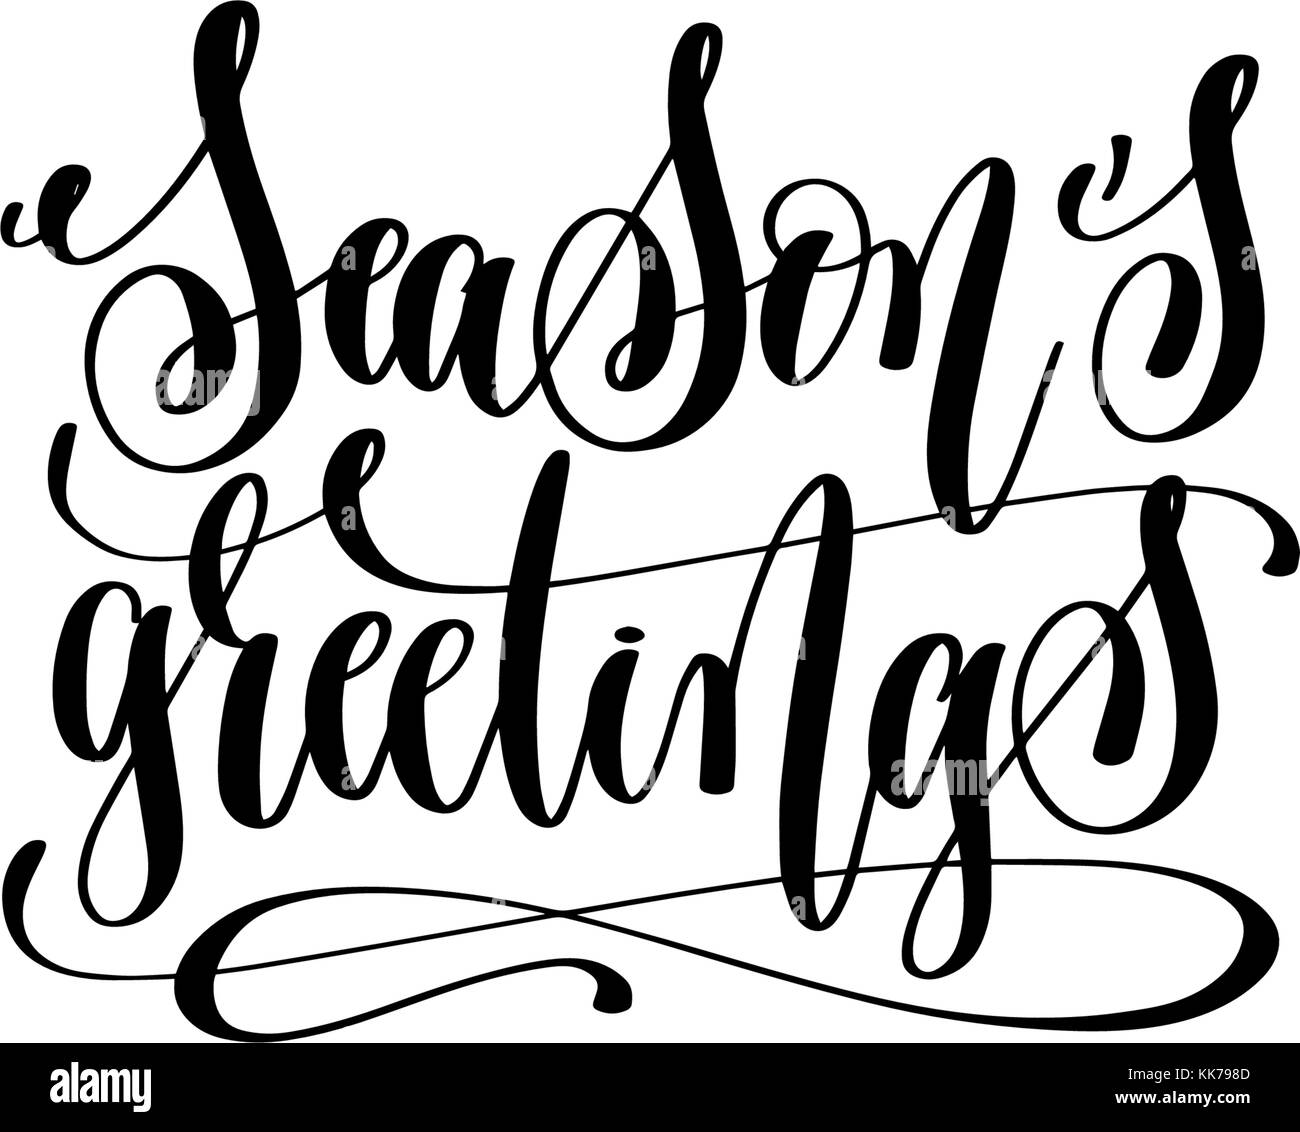 Seasons Greeting Black And White Stock Photos Images Alamy